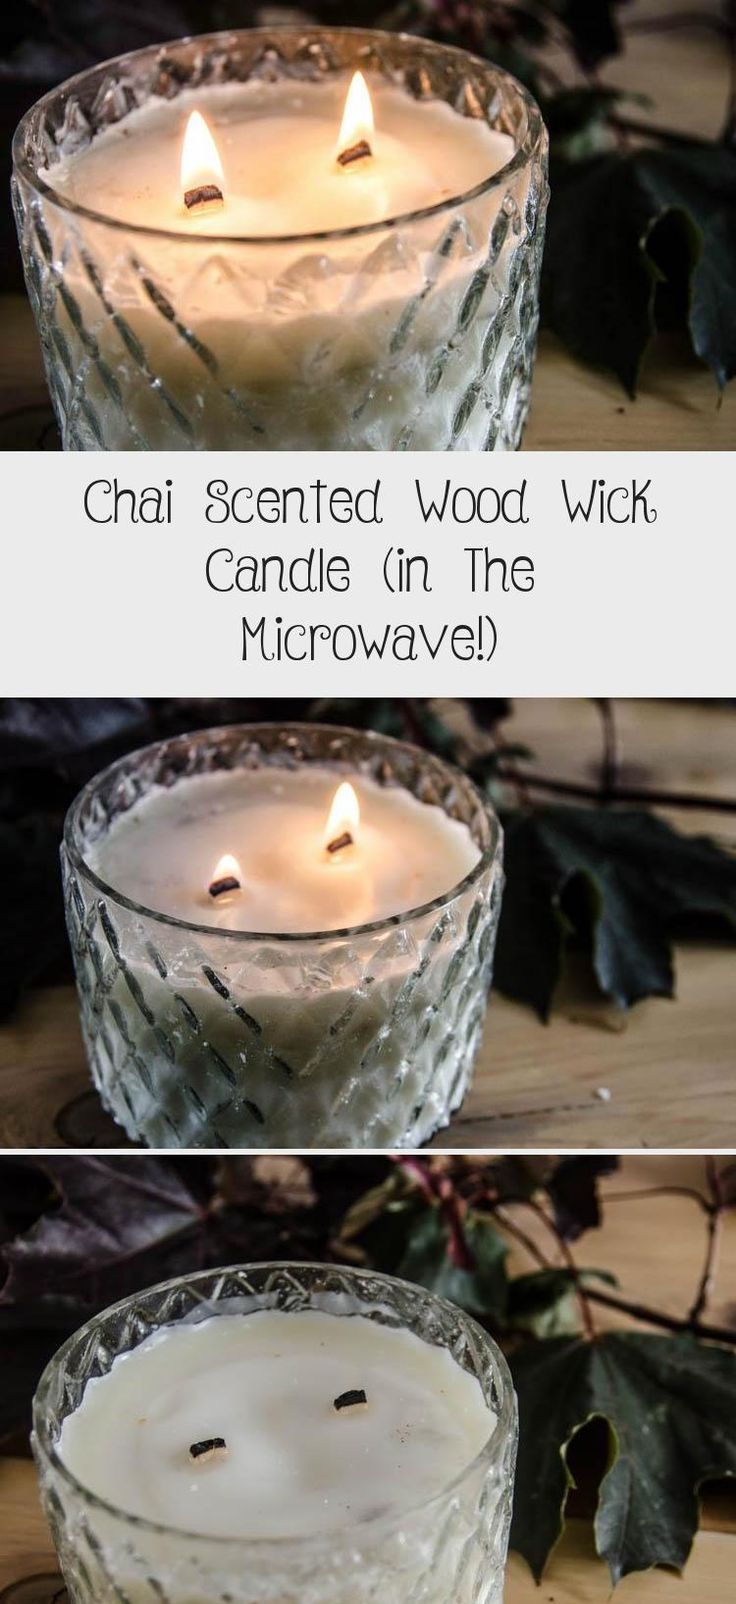 Chai Scented Wood Wick Candle (in The Microwave!) DIY, 2020